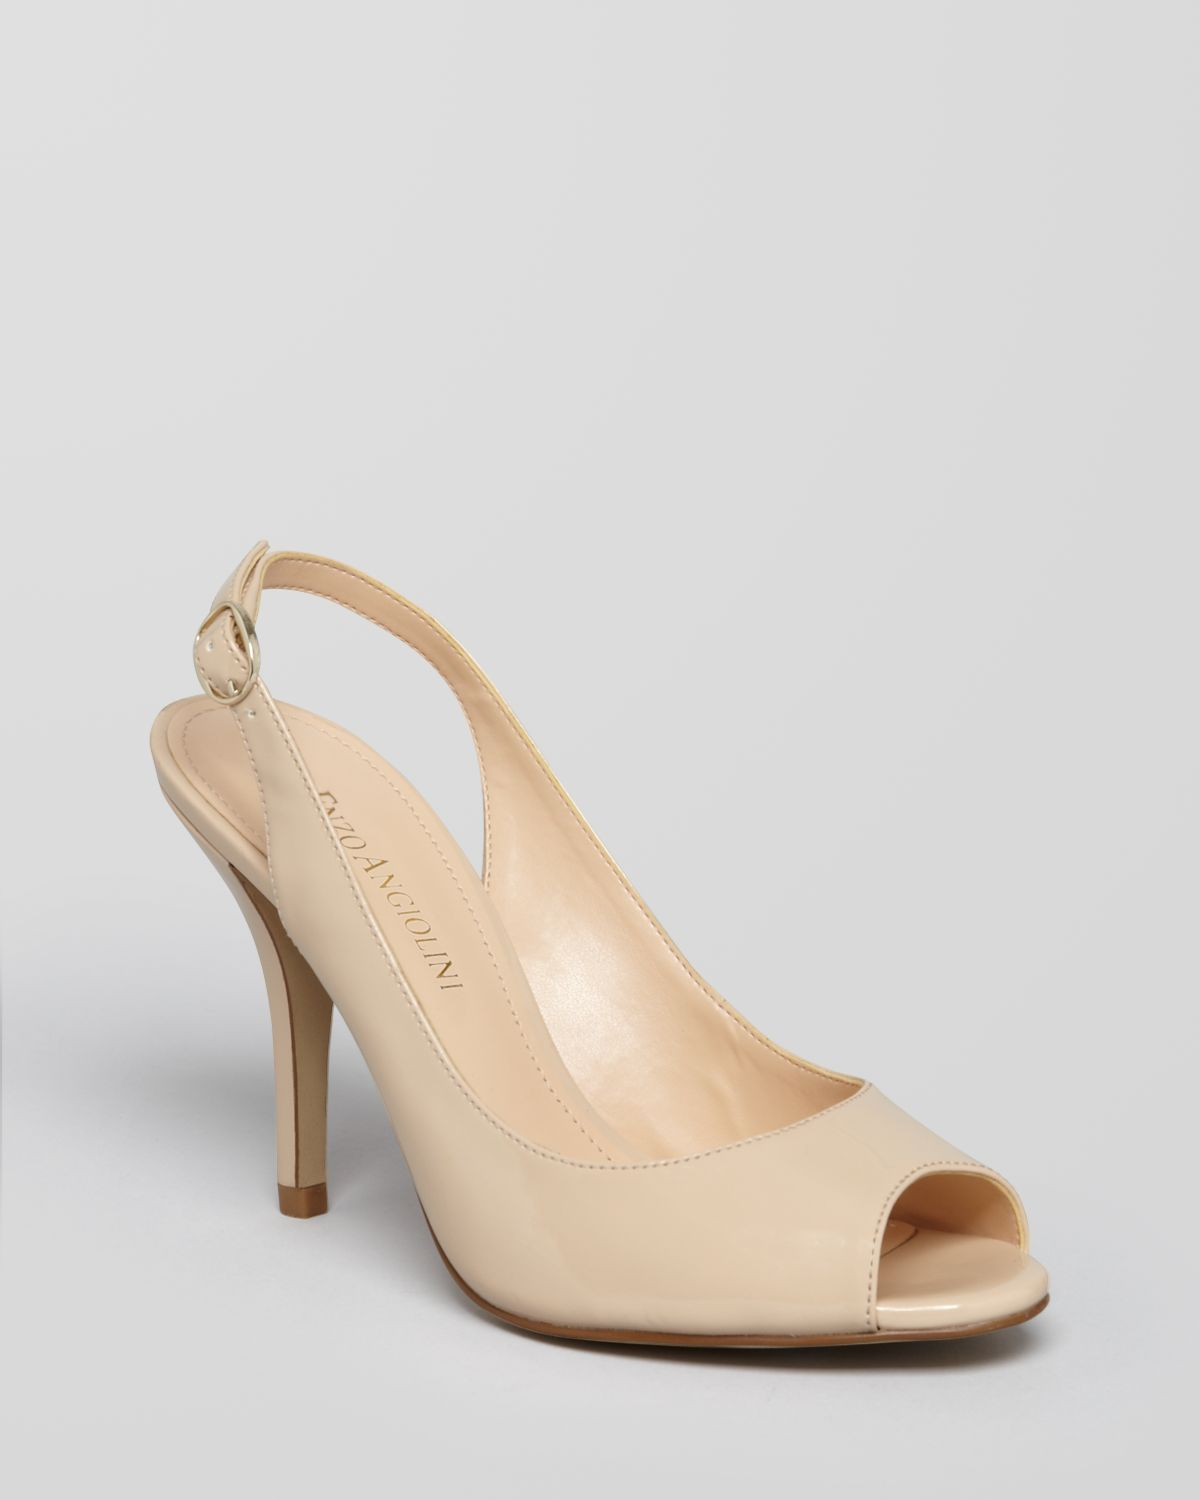 Find great deals on eBay for Slingback in Women's Clothing, Shoes and Heels. Shop with confidence.